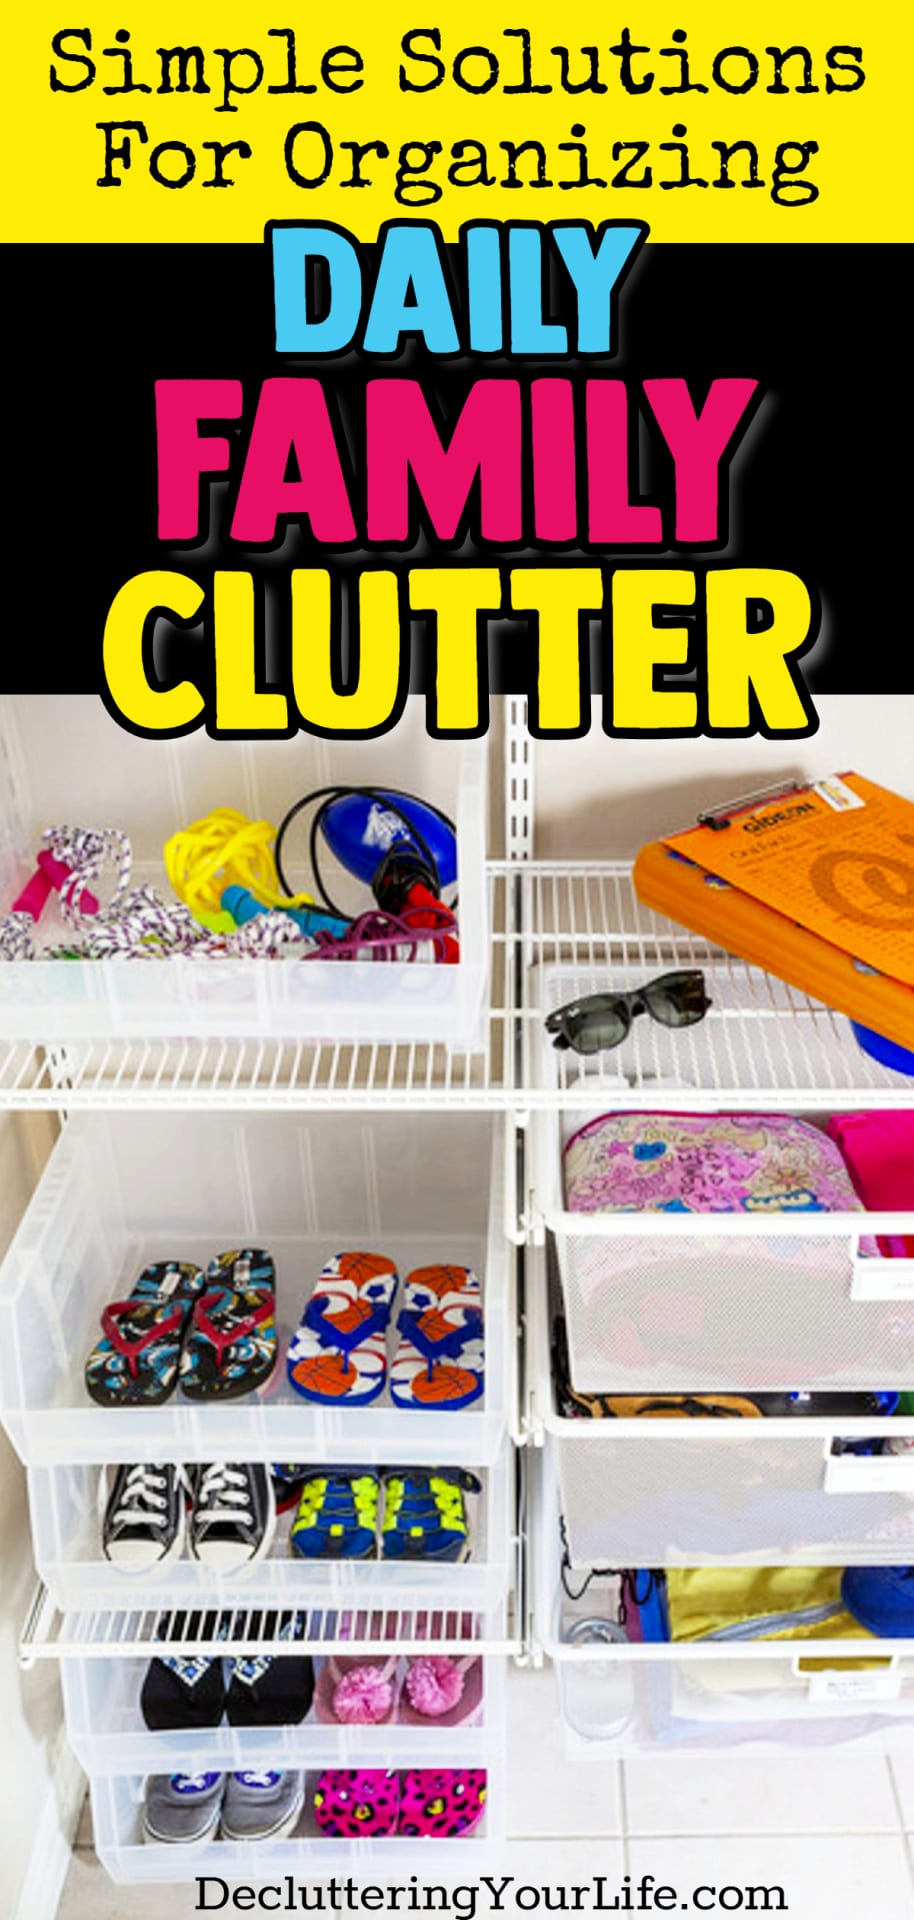 Such a Simple Solution to UNclutter Your Home! Getting organized and STAYING organized with kids is NO JOKE! Here's a borderline GENIUS home organization hack: create a clutter drop zone area for your family!